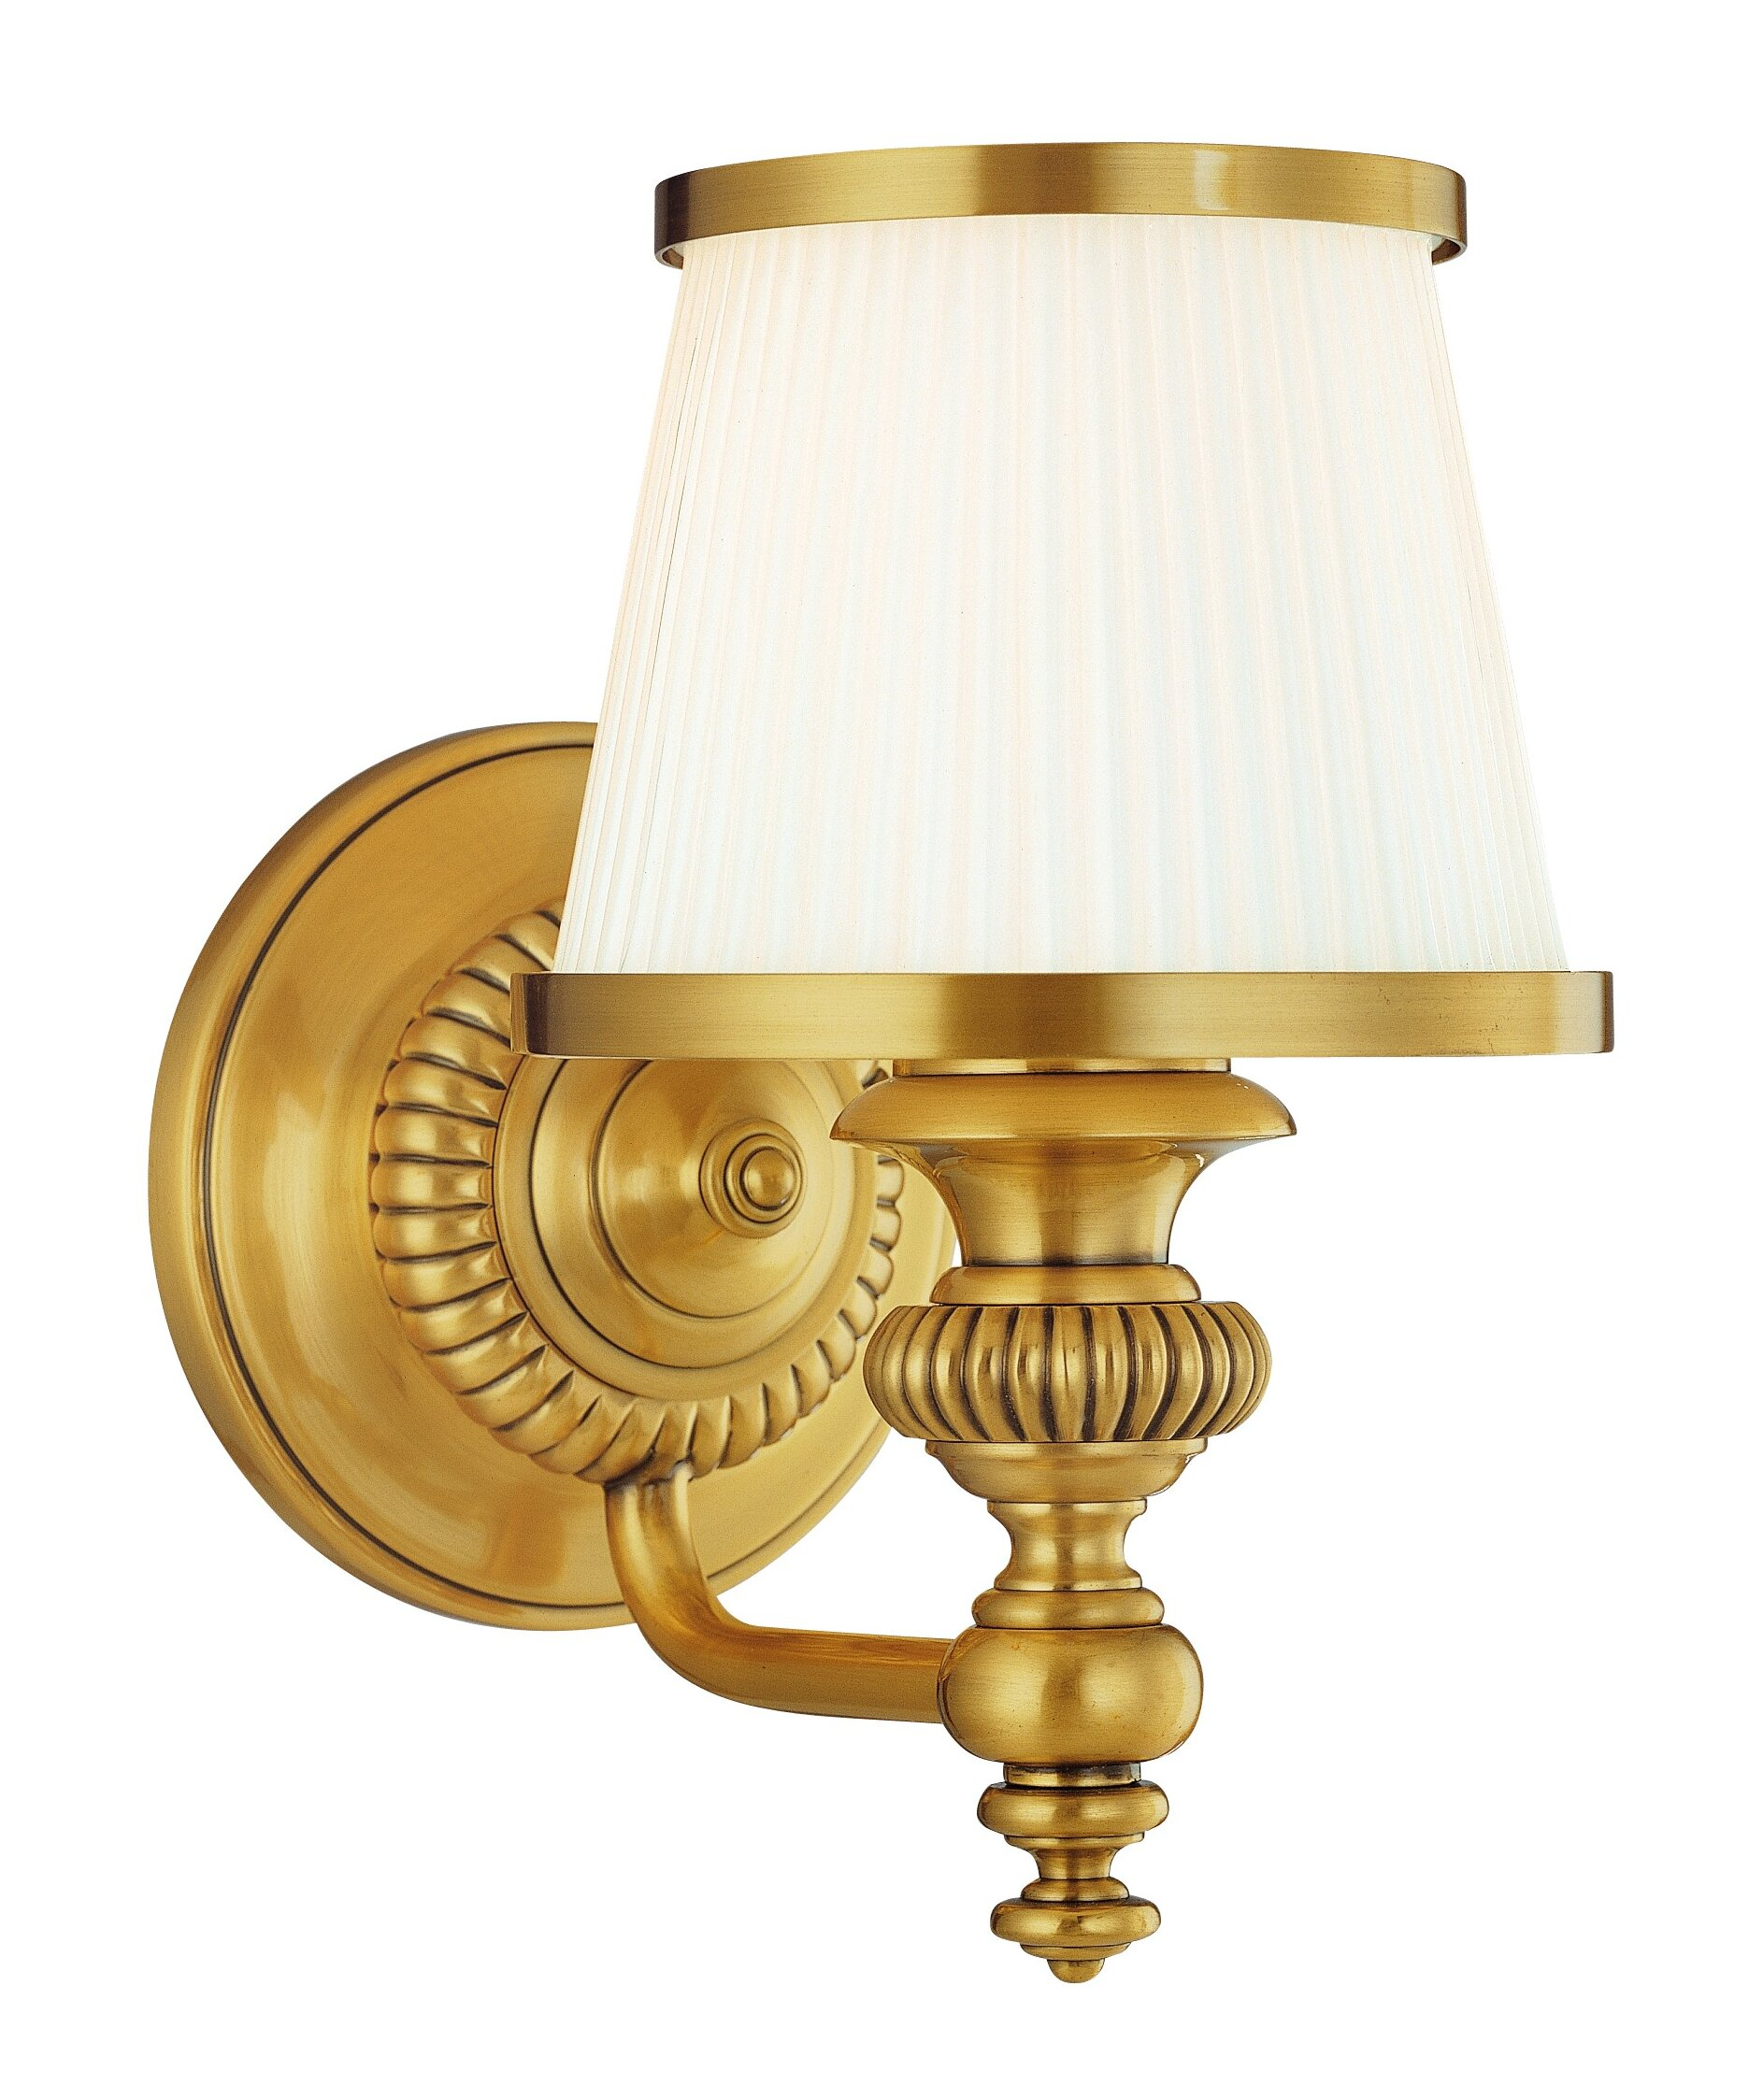 Fabric Astoria Grand Wall Sconces You Ll Love In 2021 Wayfair